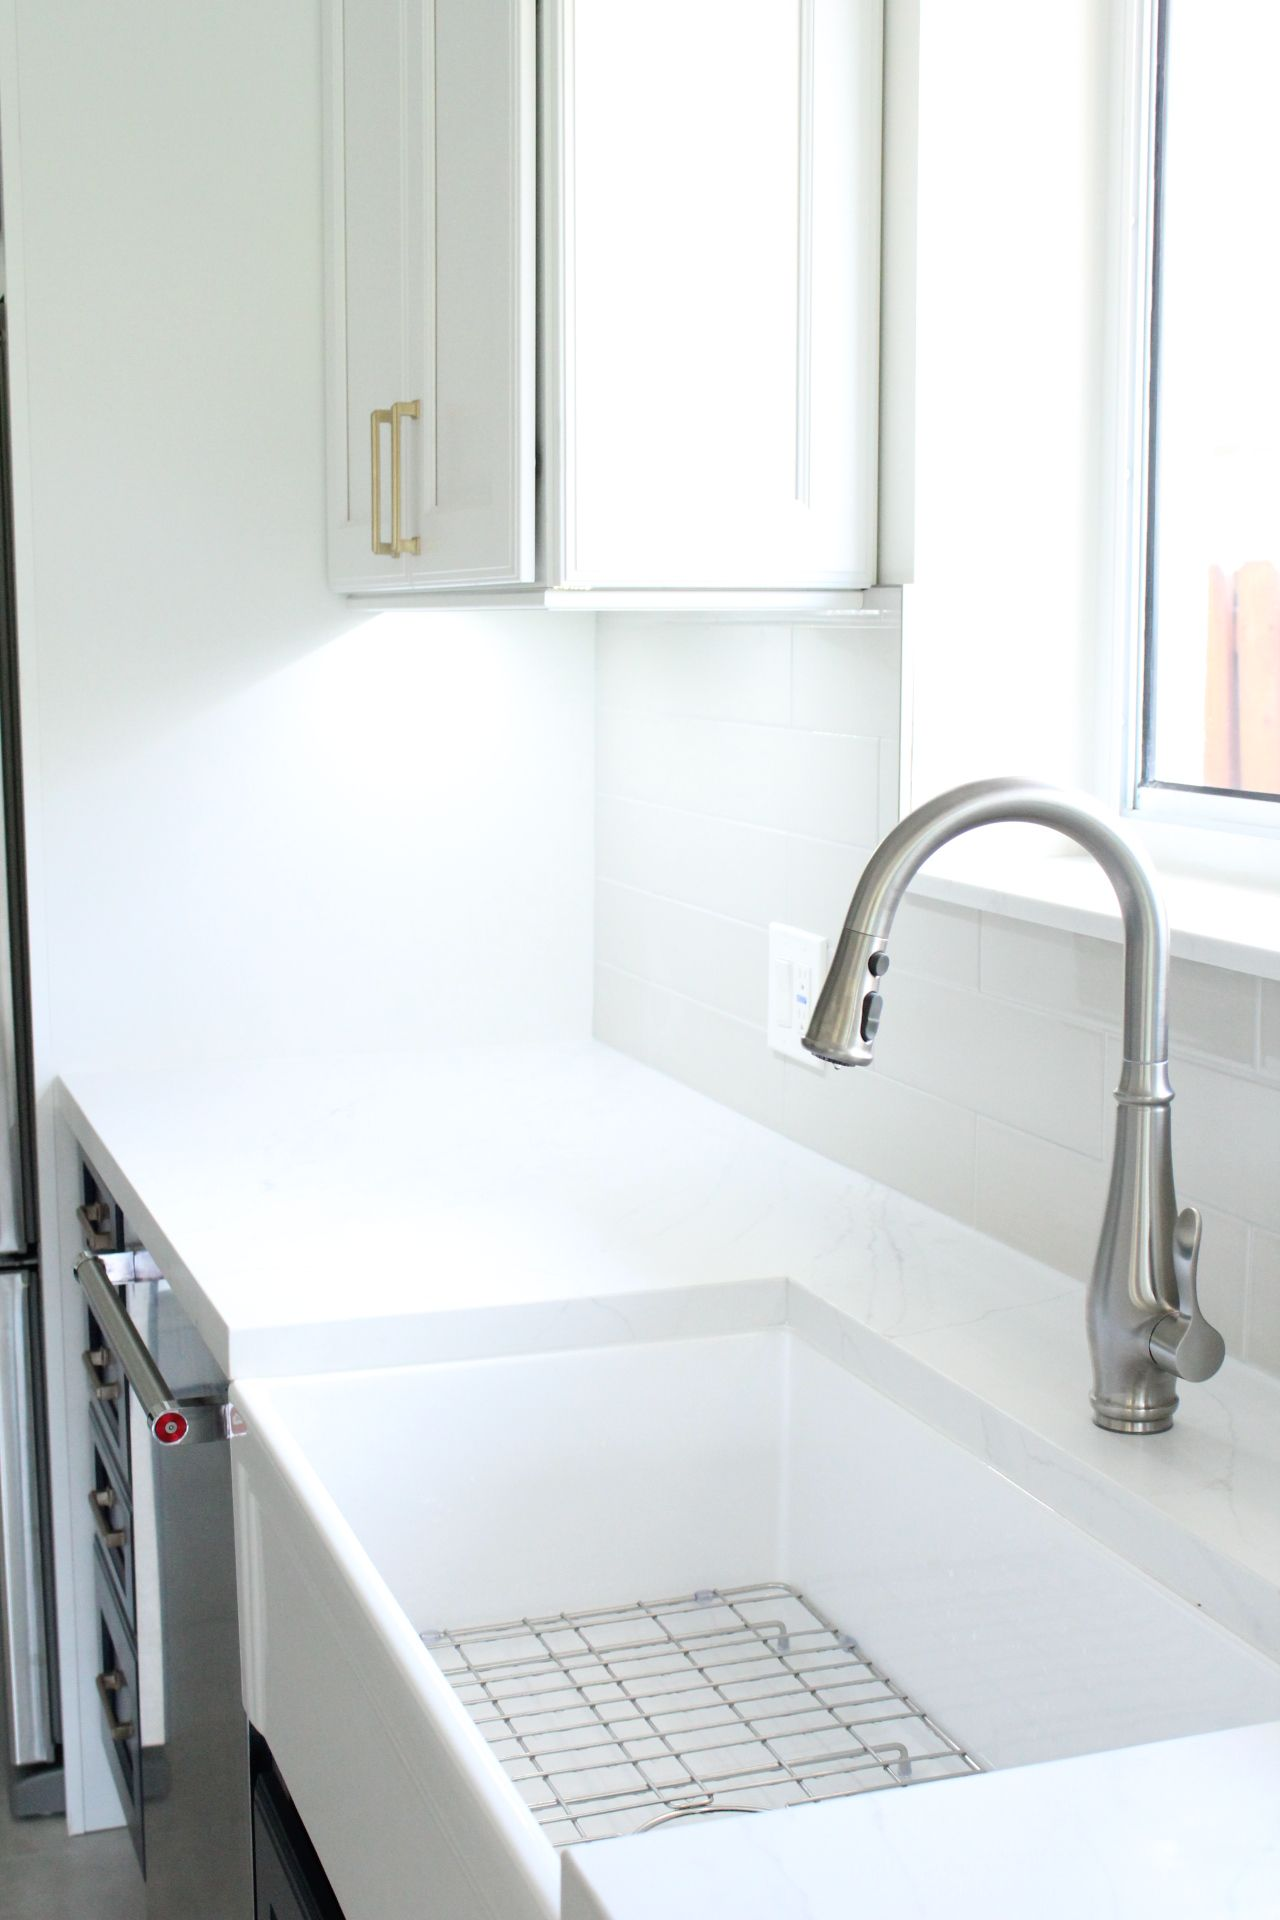 33 farmhouse sink is awesome combined with the kohler